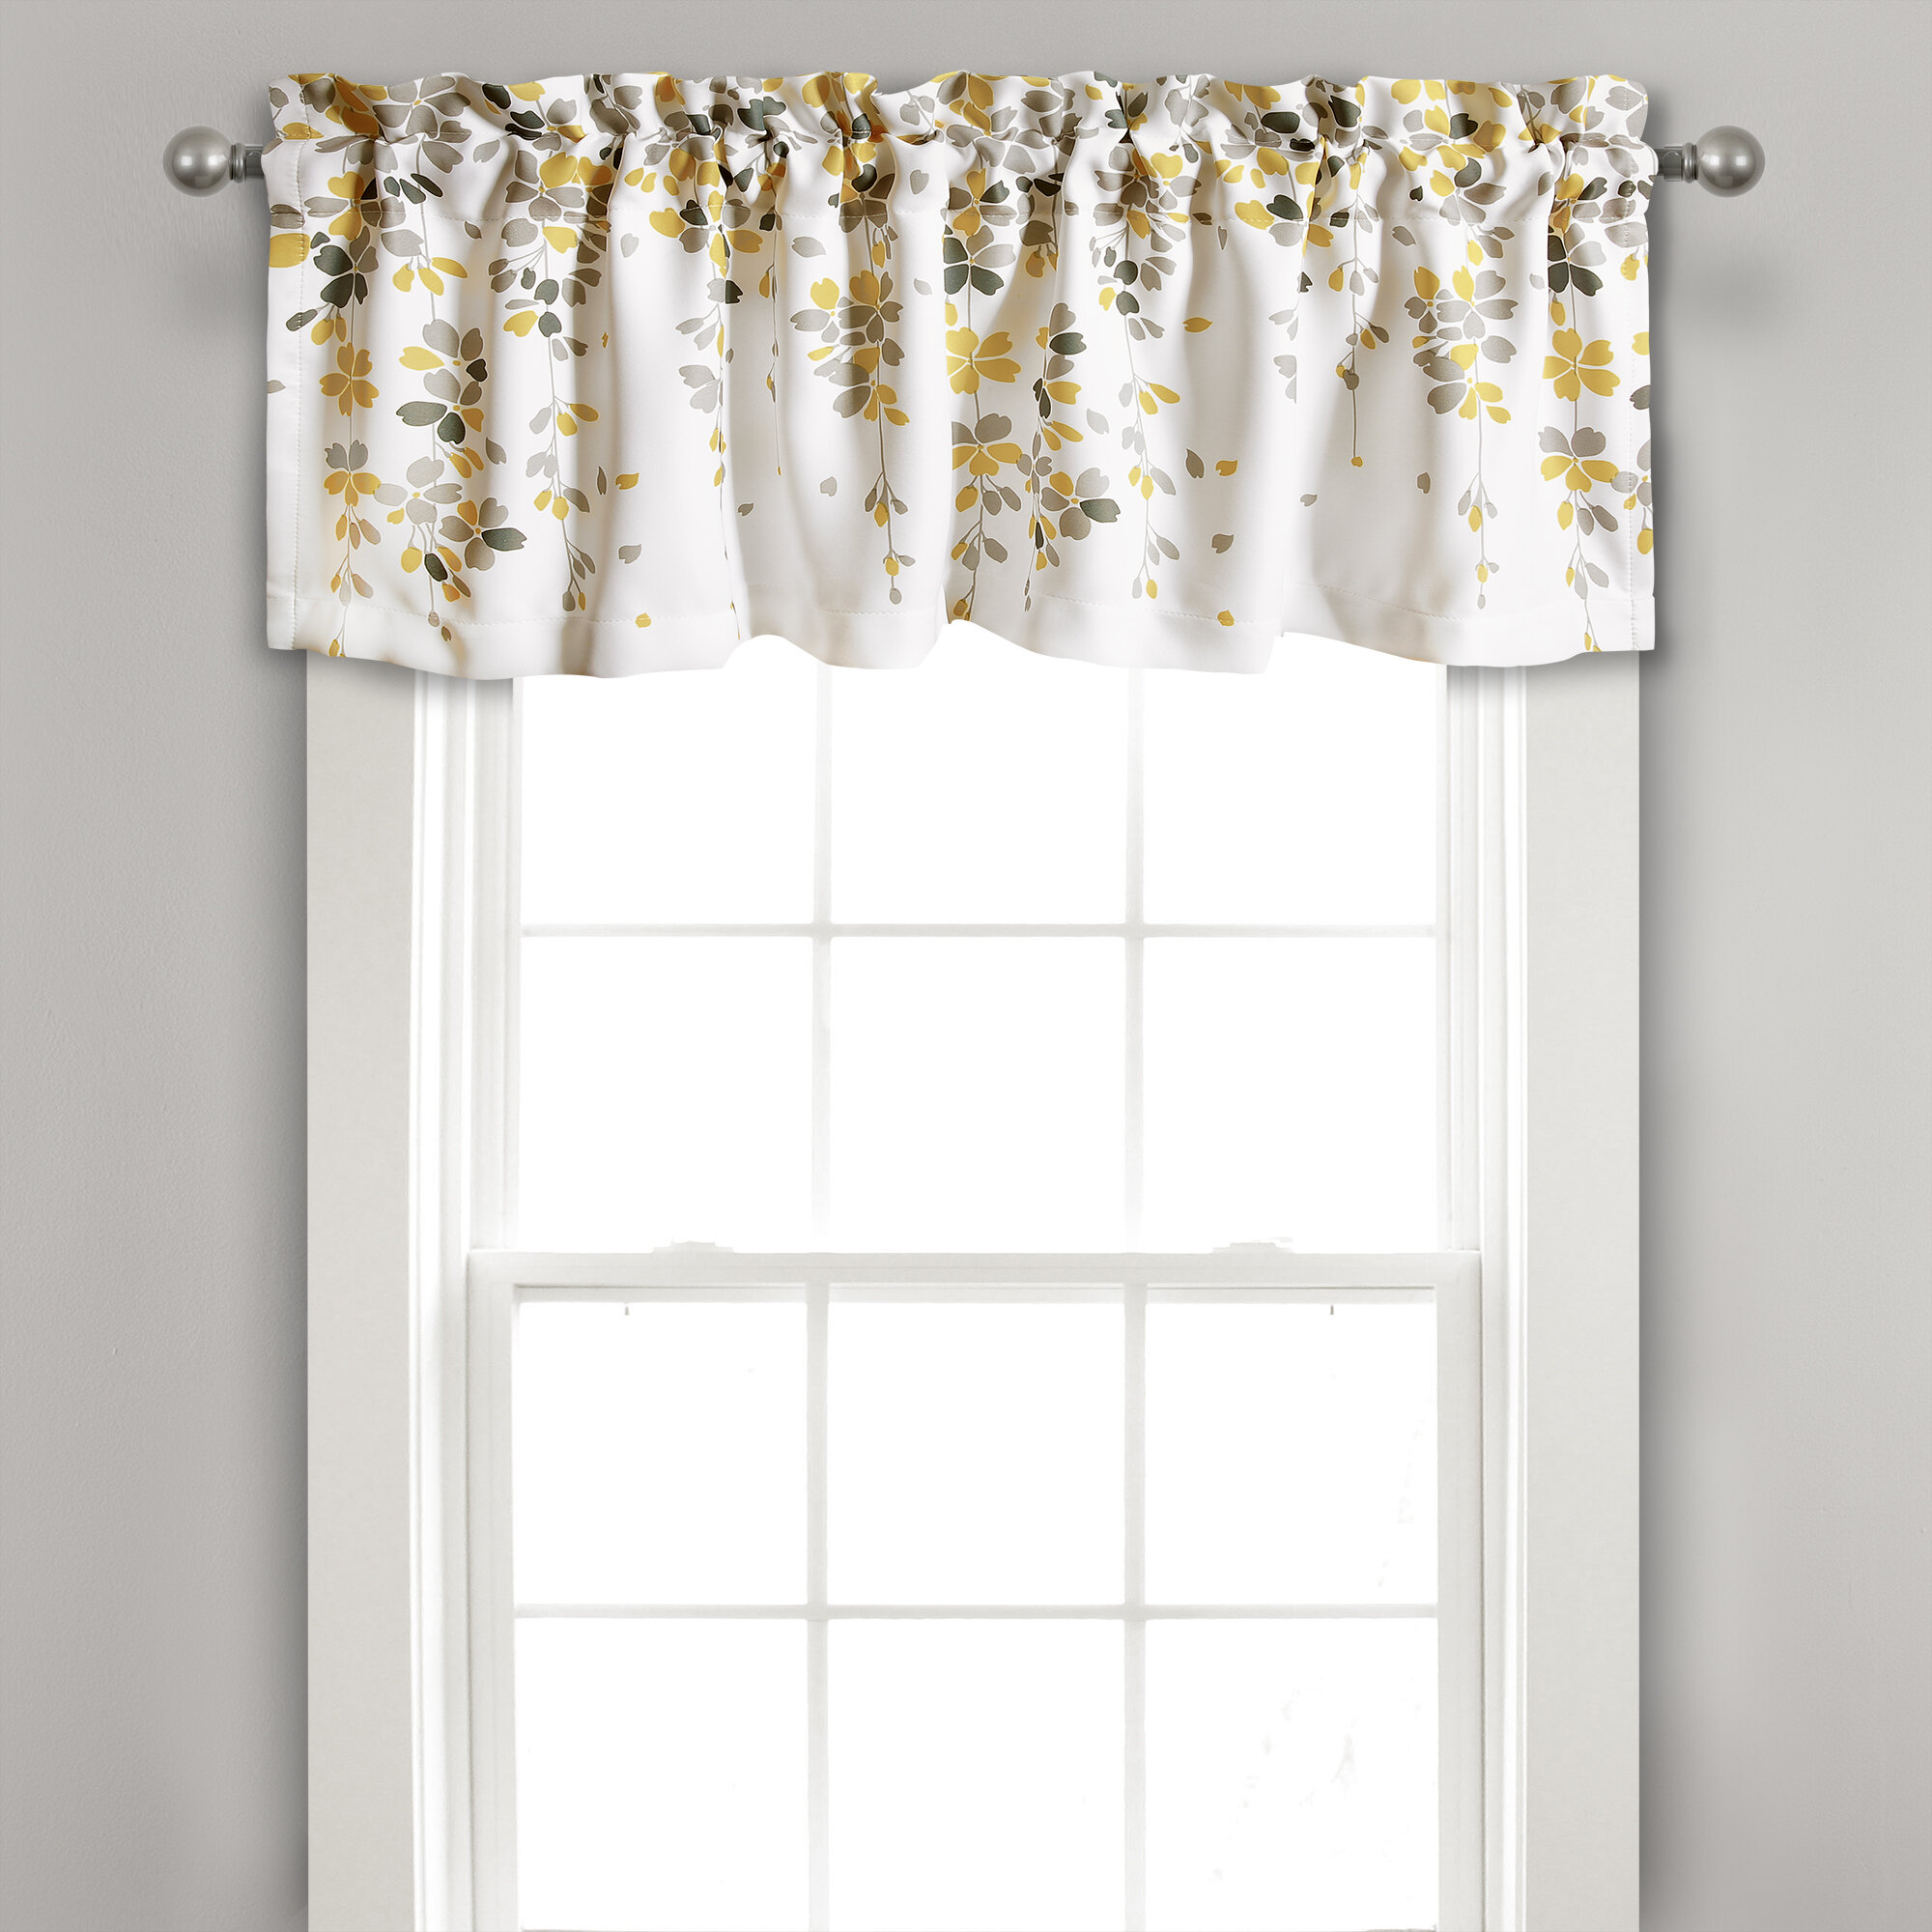 Yellow Gold Valances Kitchen Curtains You Ll Love In 2021 Wayfair